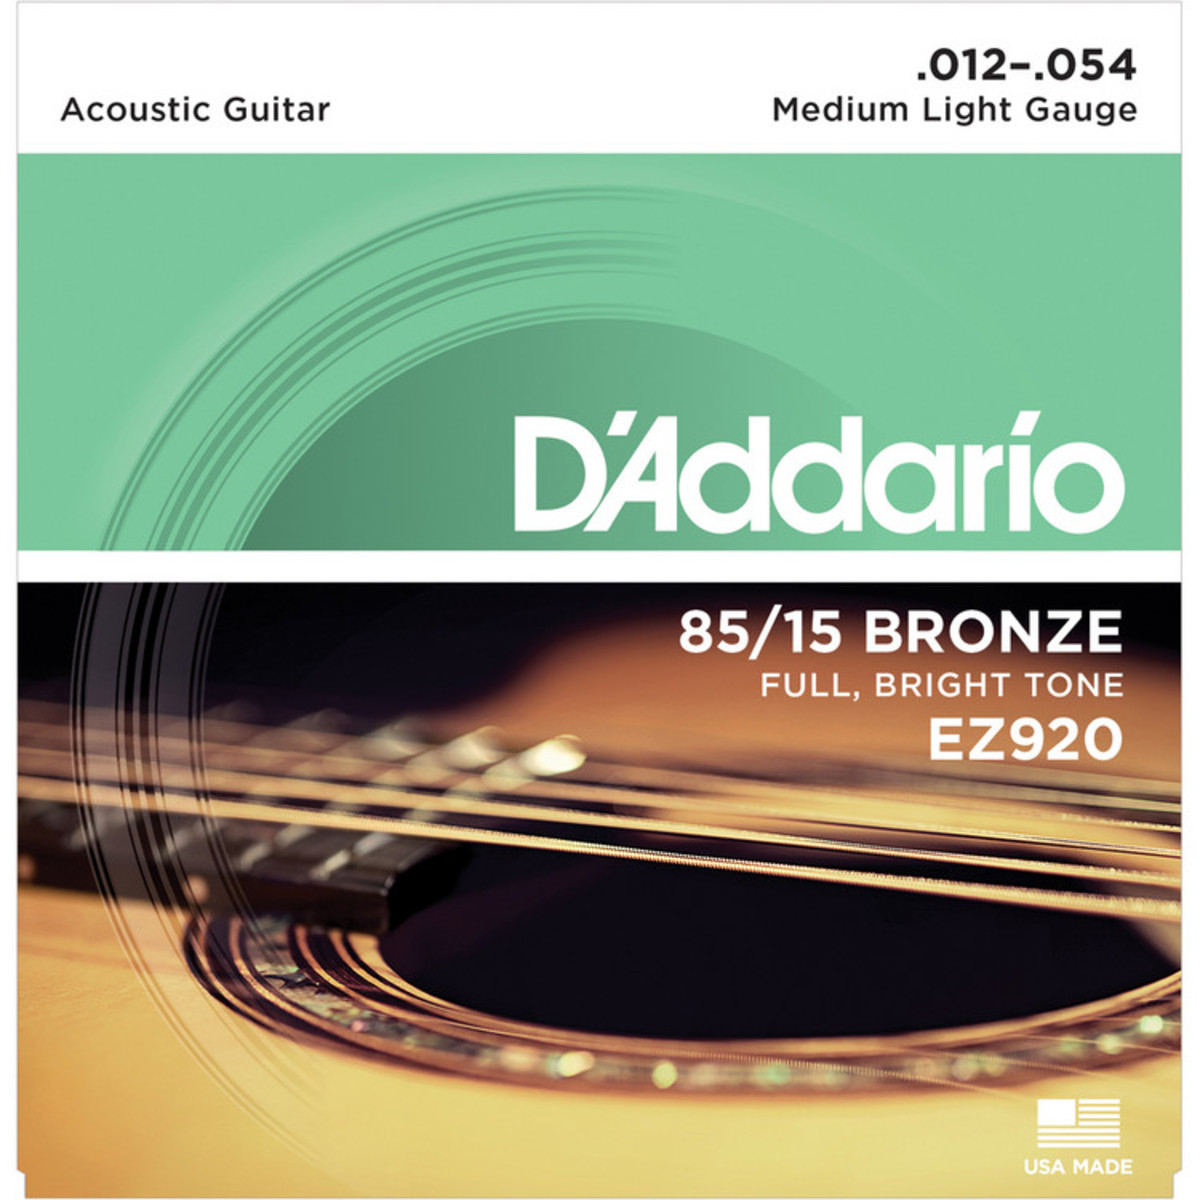 D'Addario EZ920 85/15 Guitar Strings 12-54